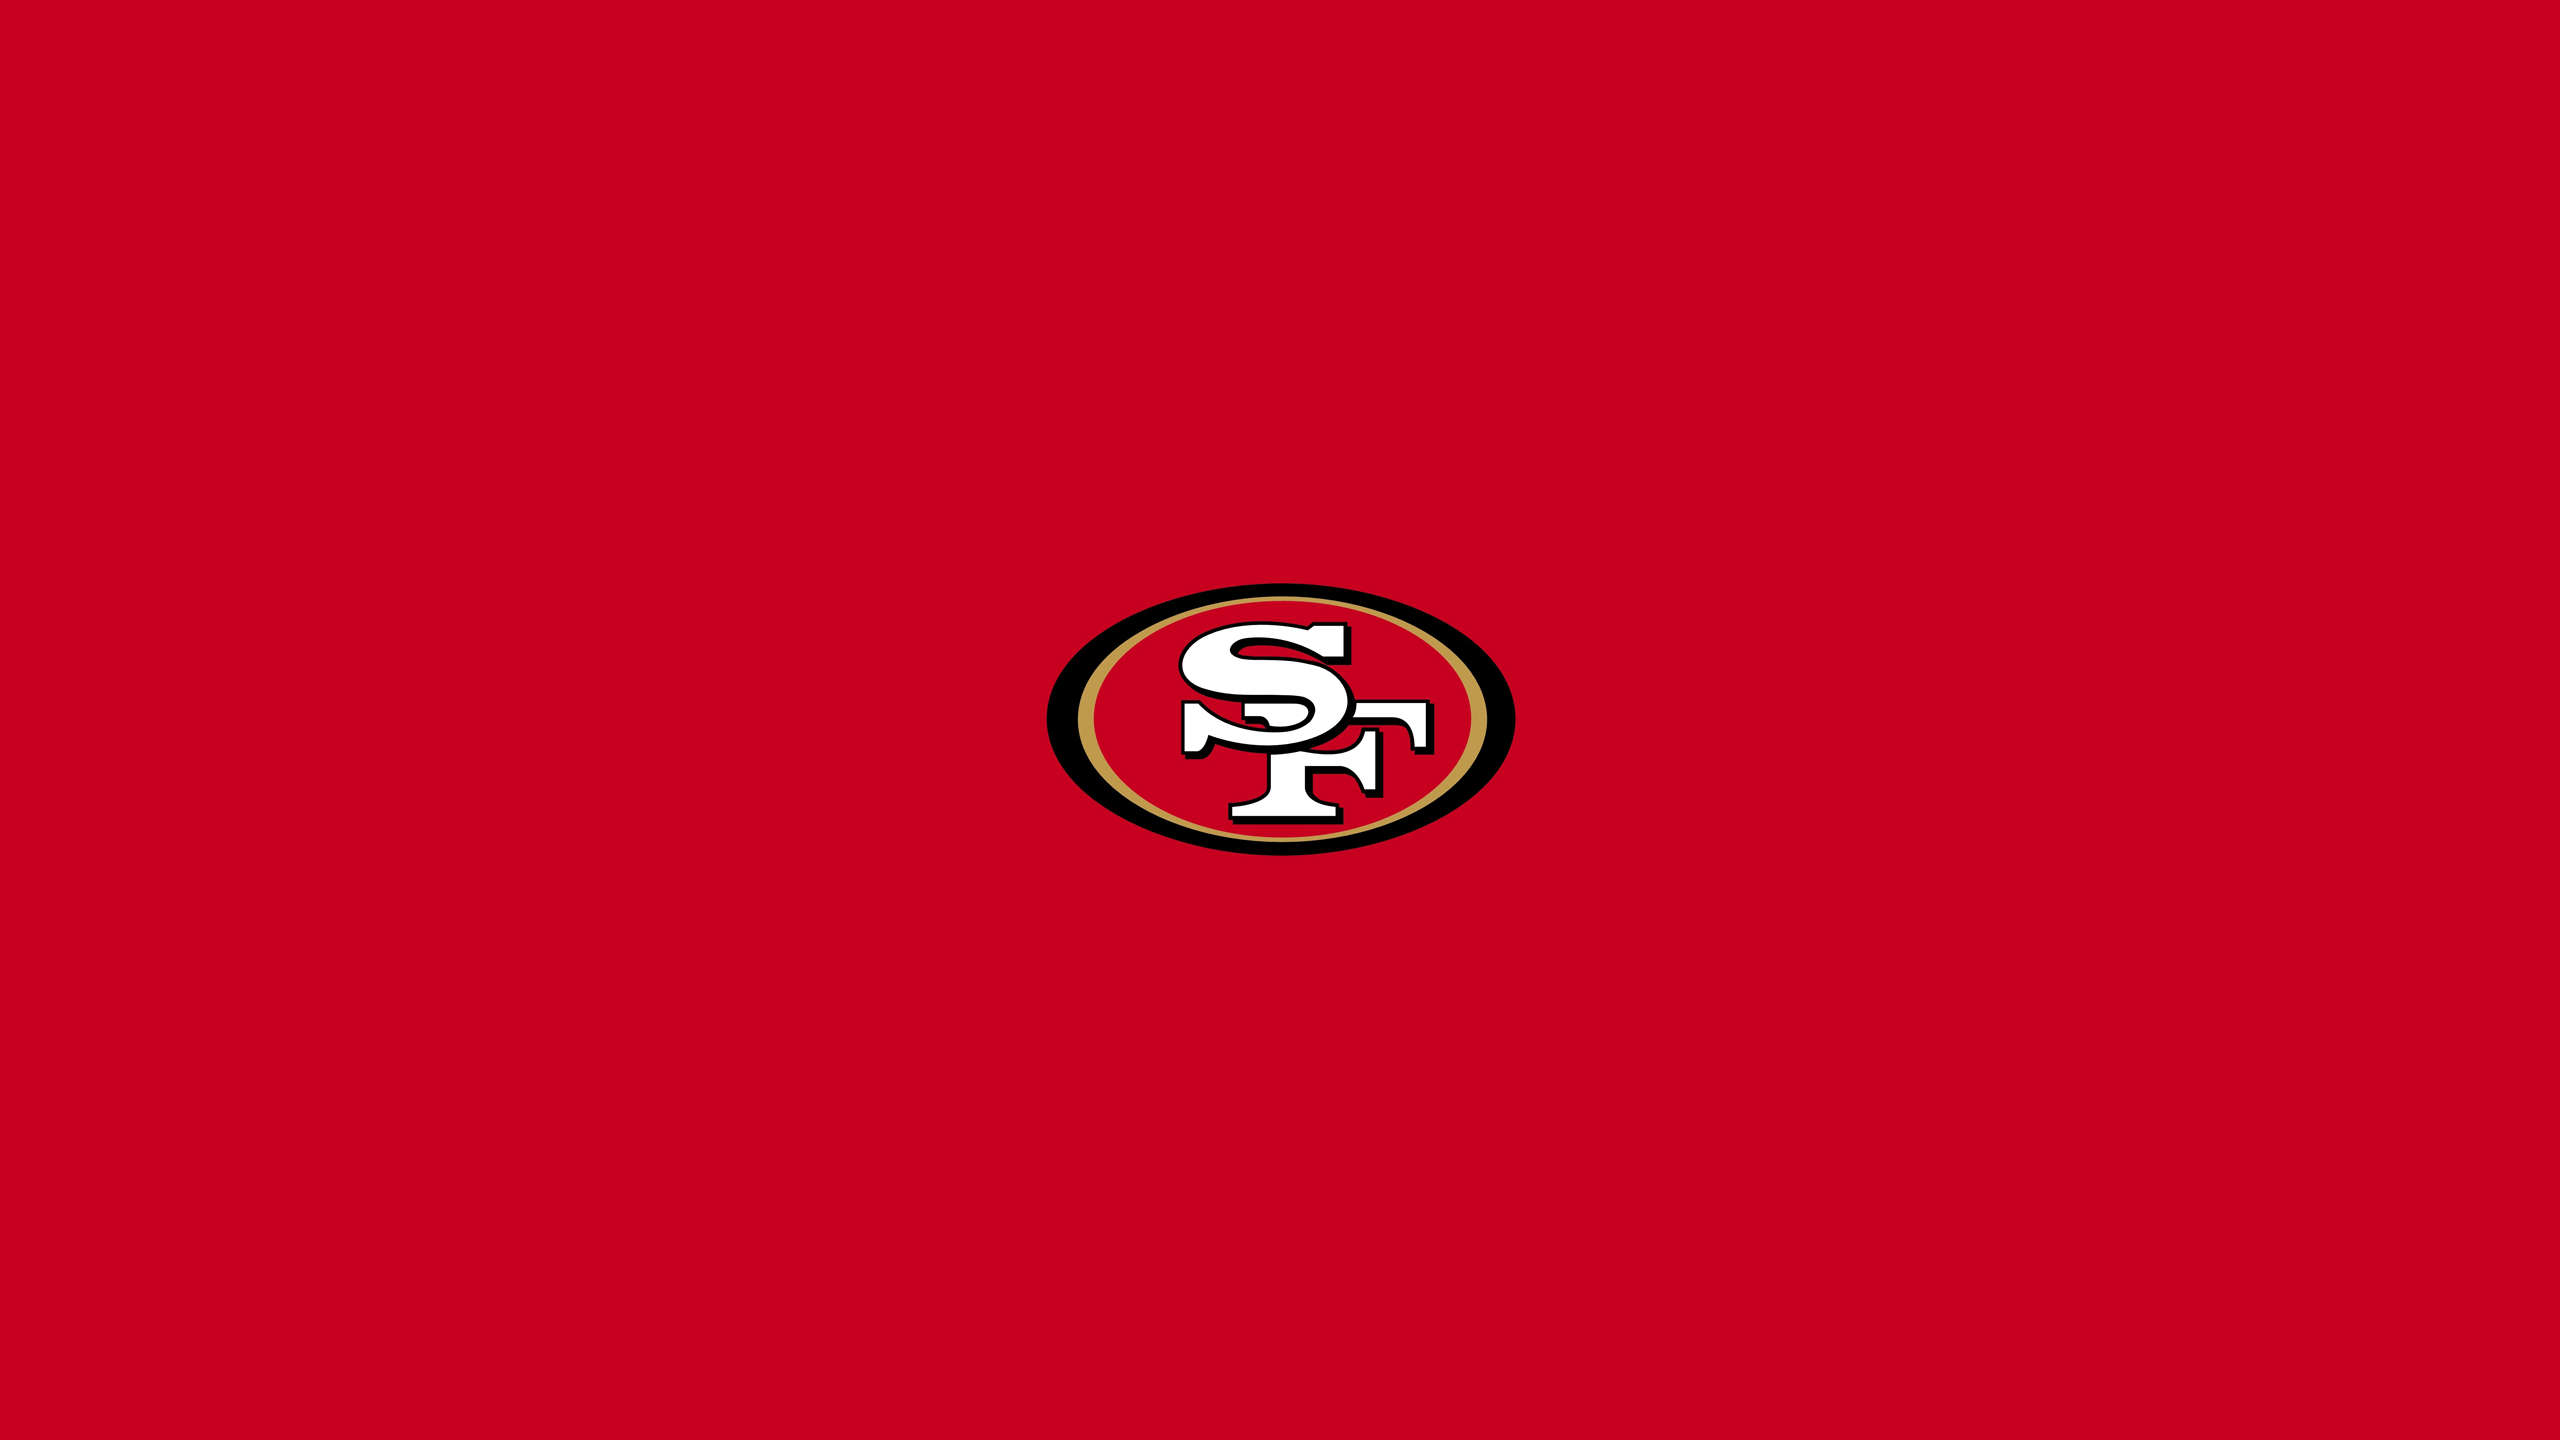 49ers wallpaper 5245 2560x1440 px hdwallsource 49ers wallpaper 5245 voltagebd Gallery